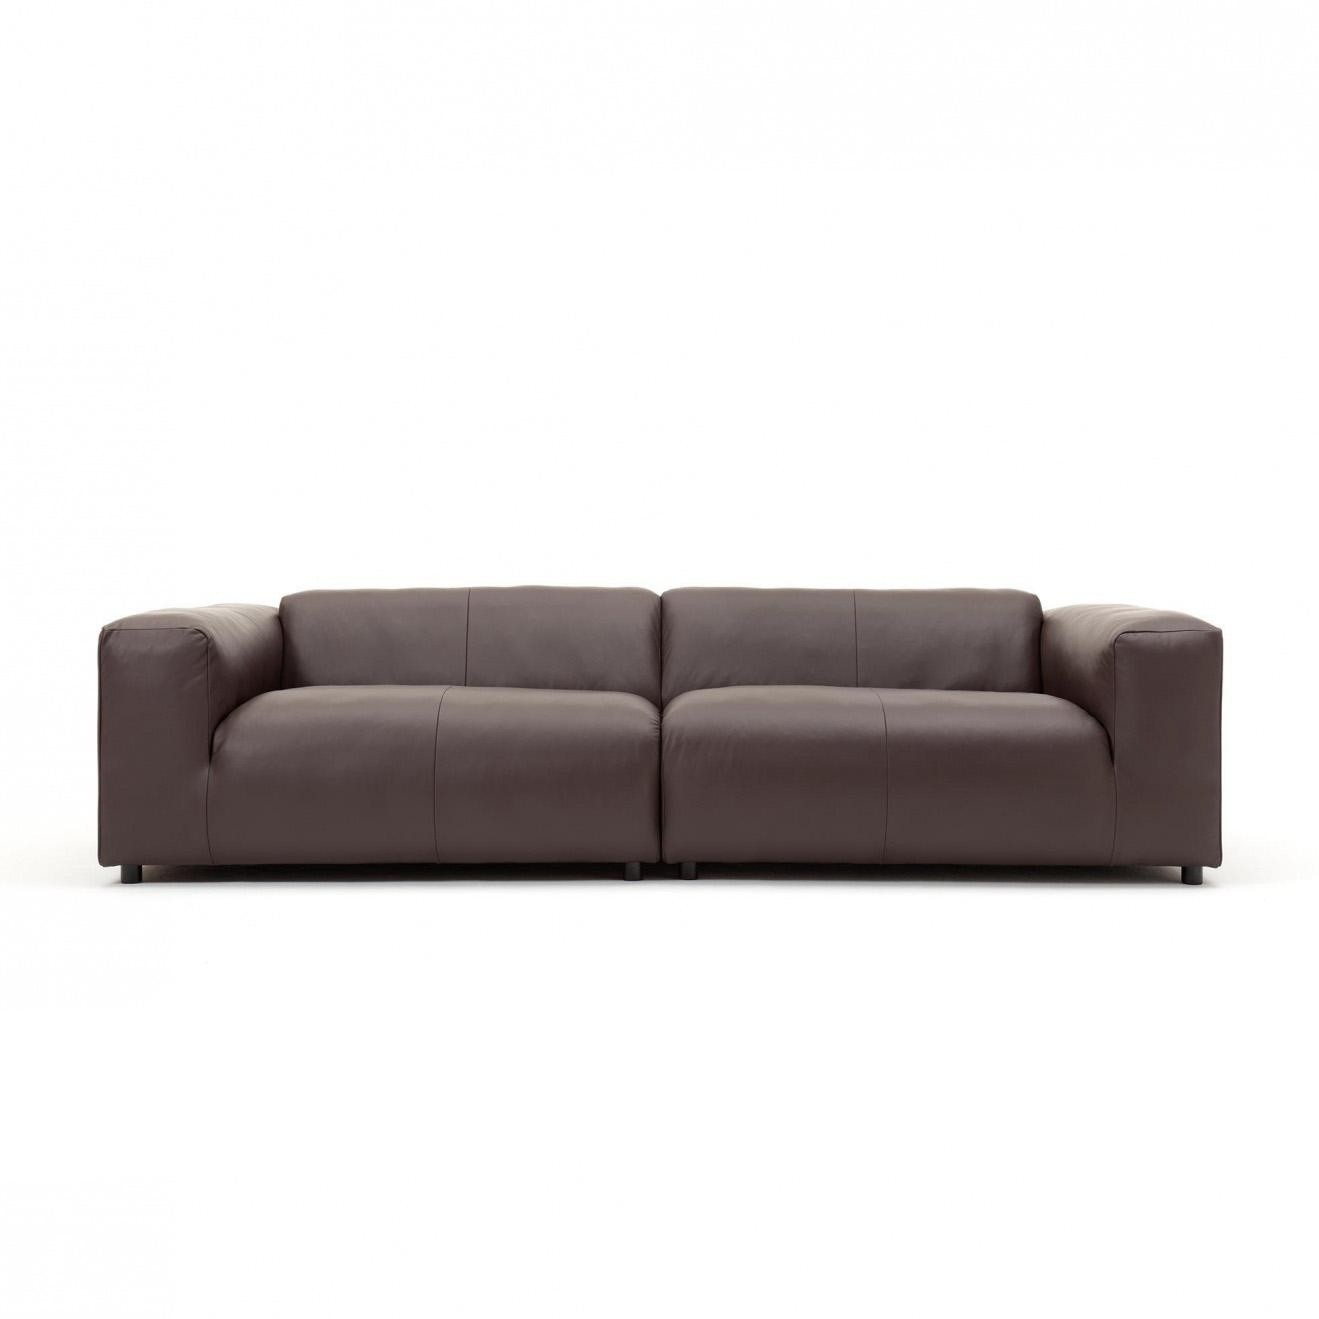 Bettsofa Rolf Benz Freistil 187 3 Seater Leather Sofa